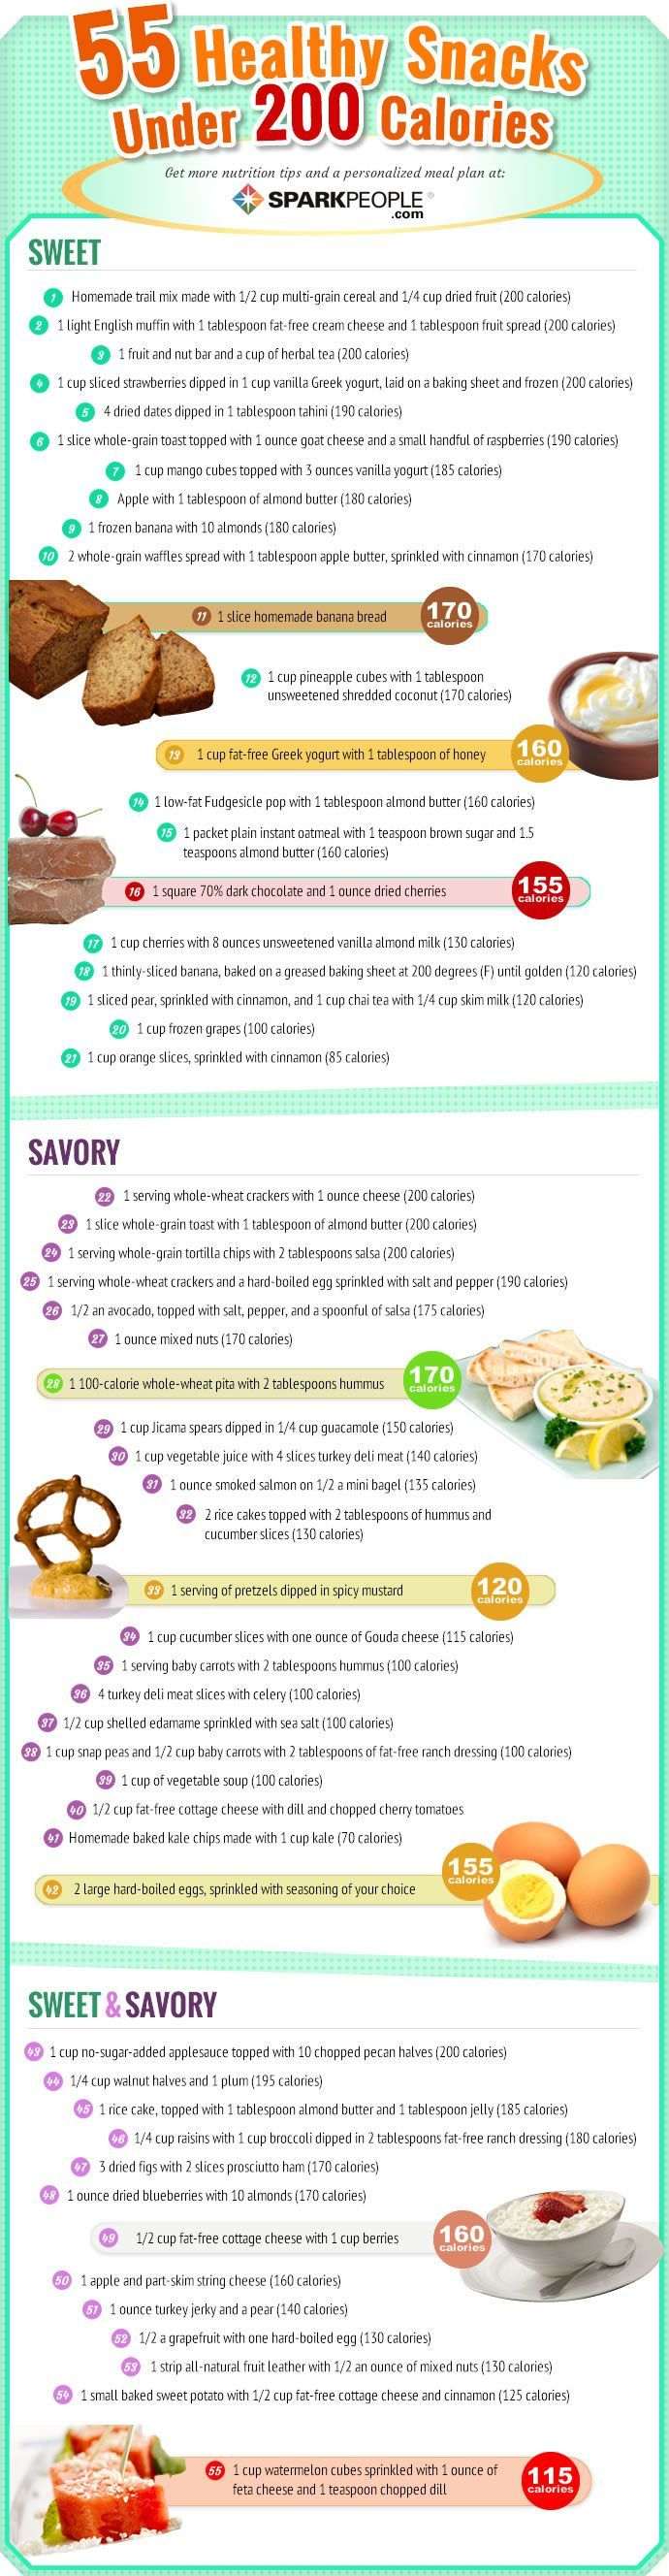 Looking for something healthy to snack on at work or between classes? Here are 55 Healthy Snacks Under 200 Calories ^^^ Get your healthy recipes now!